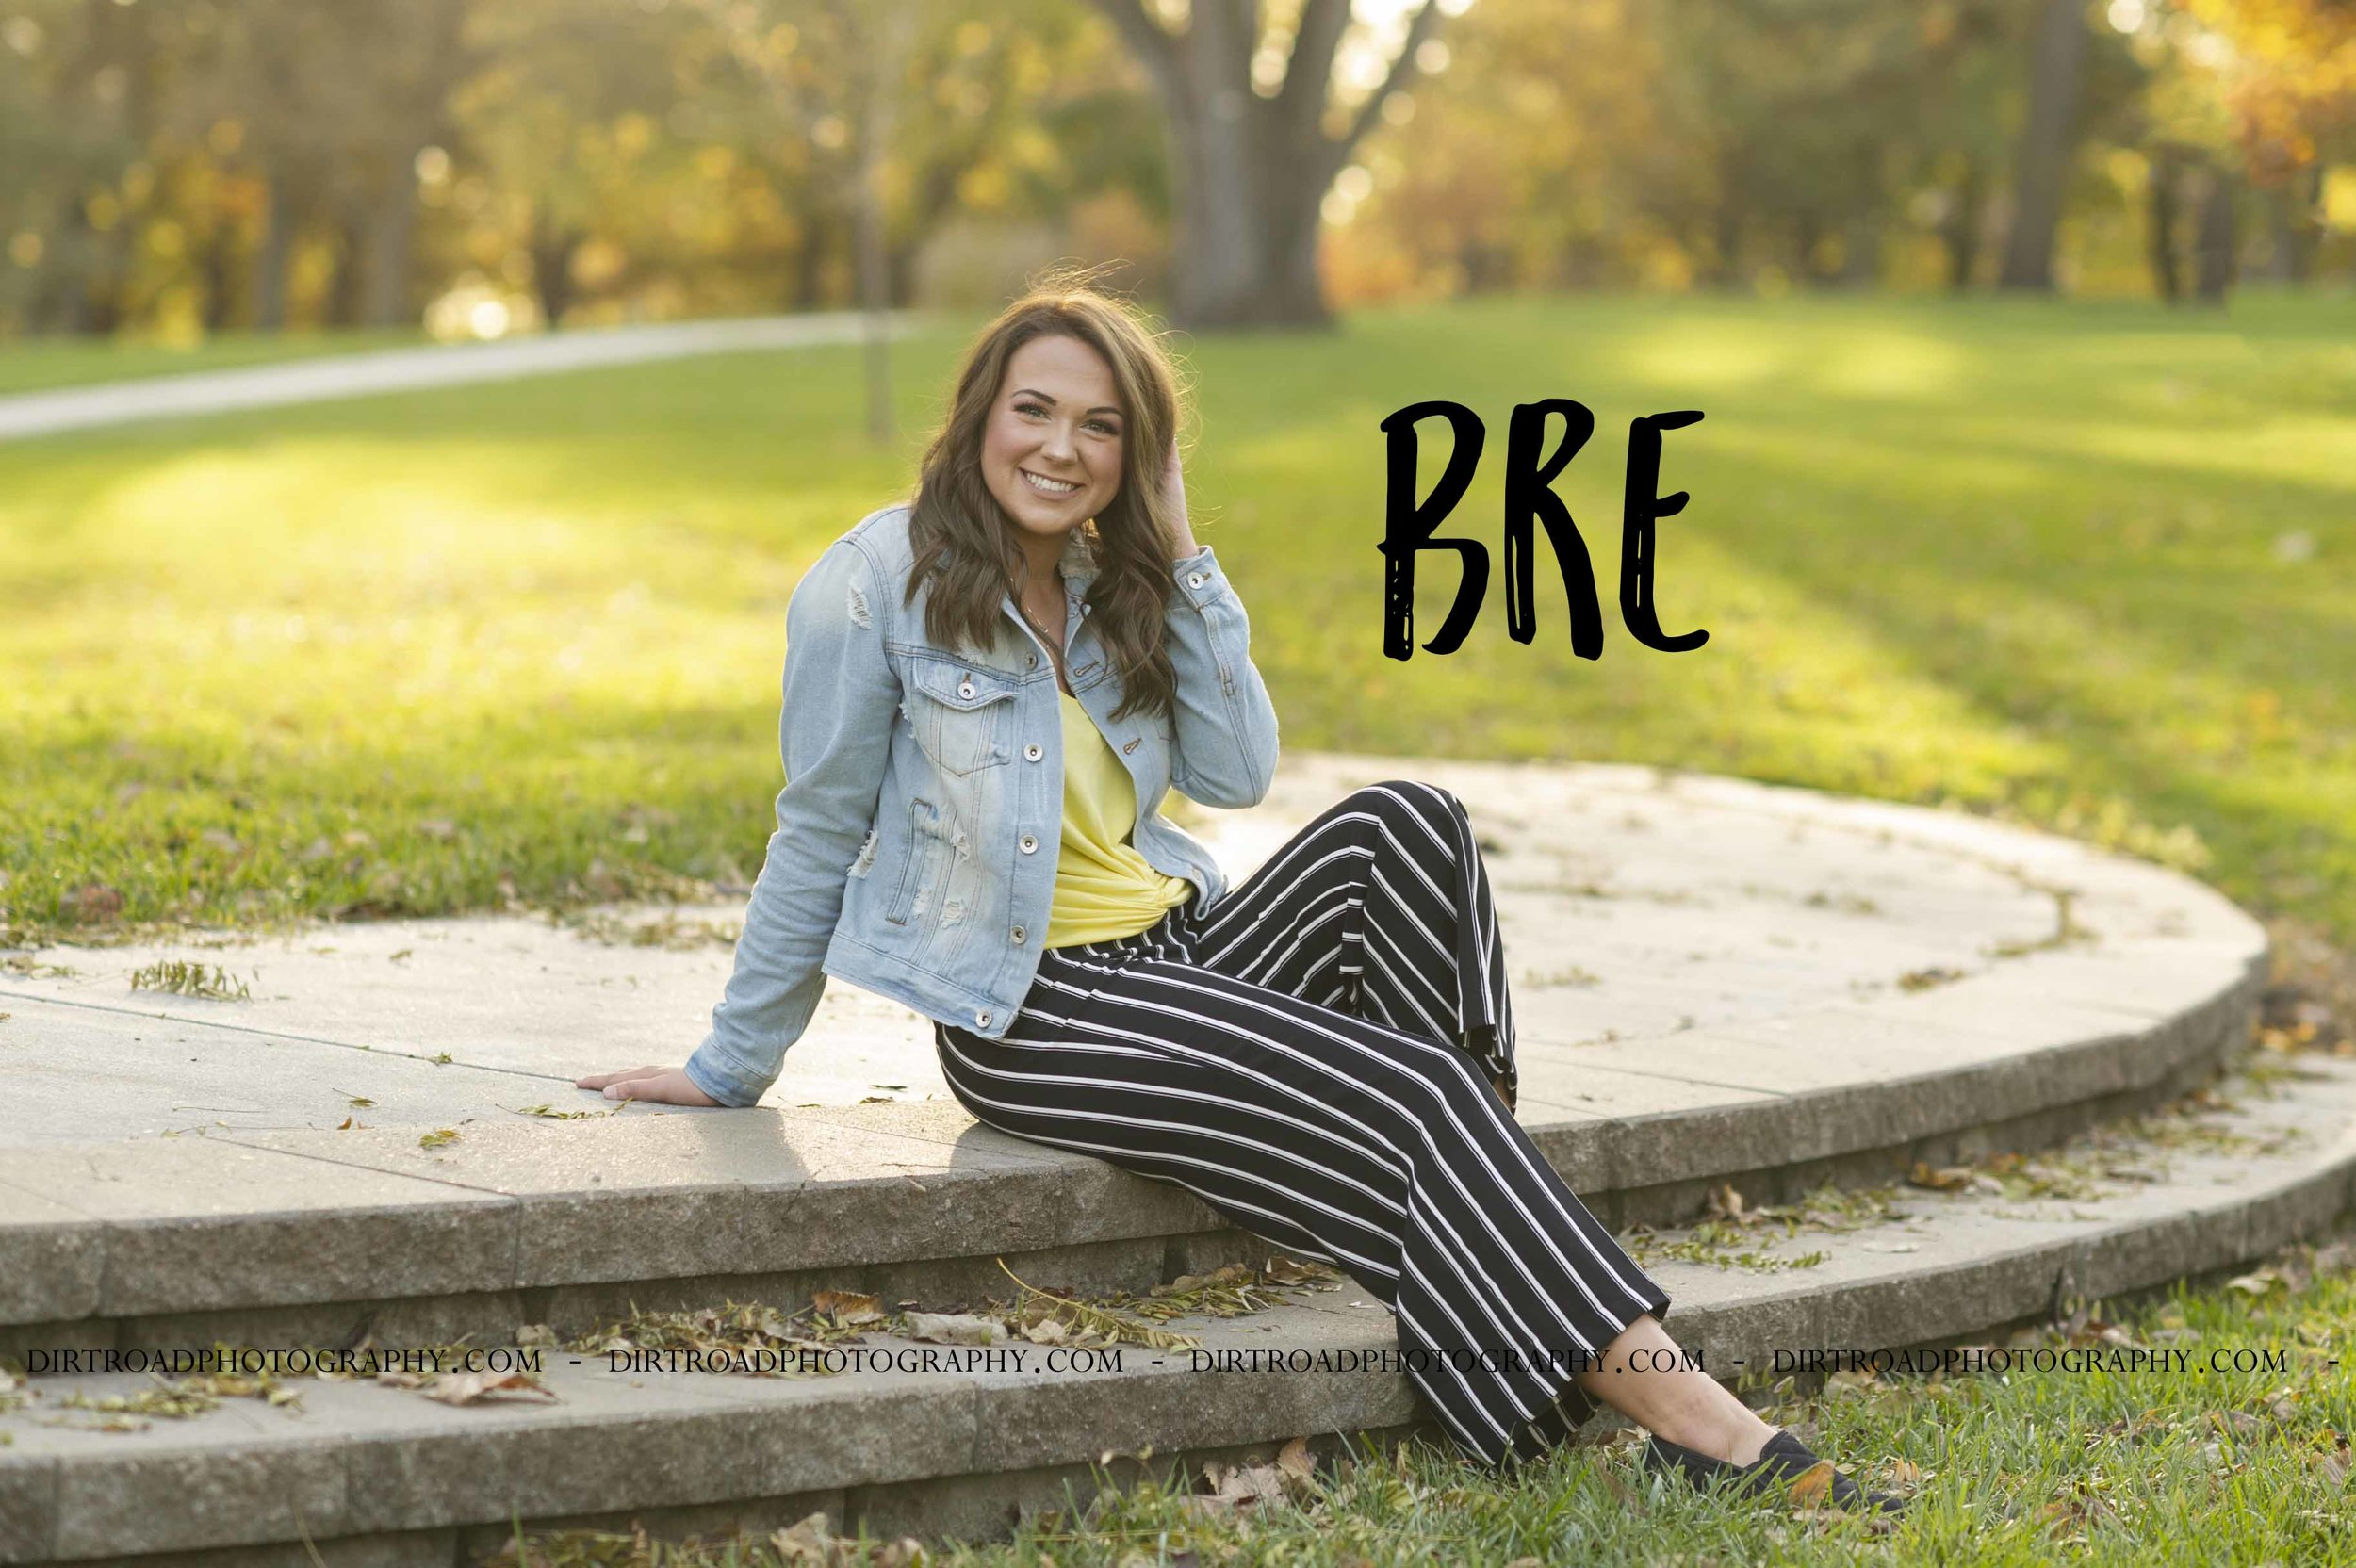 images of high school girl senior photos named bre zoubek of wilber nebraska who went to wilber-clatonia high school in nebraska and is part of the class of 2019. photos were taken near crete nebraska in saline county at doane university formerly doane college of crete. photo includes tall glass buildings, brick and cement bridges, fall leaves, sunsets, pond with swans, and dirt roads. girl is dressed in striped black and white pants, steven madden shoes, yellow tank top with denim jacket with long brown hair and styled make-up. dirt road surrounded by trees and dust at sunset. tall grass with a sunset behind as well. photographer is kelsey homolka nerud of wilber nebraska who specializes in high school senior photography and senior pictures.